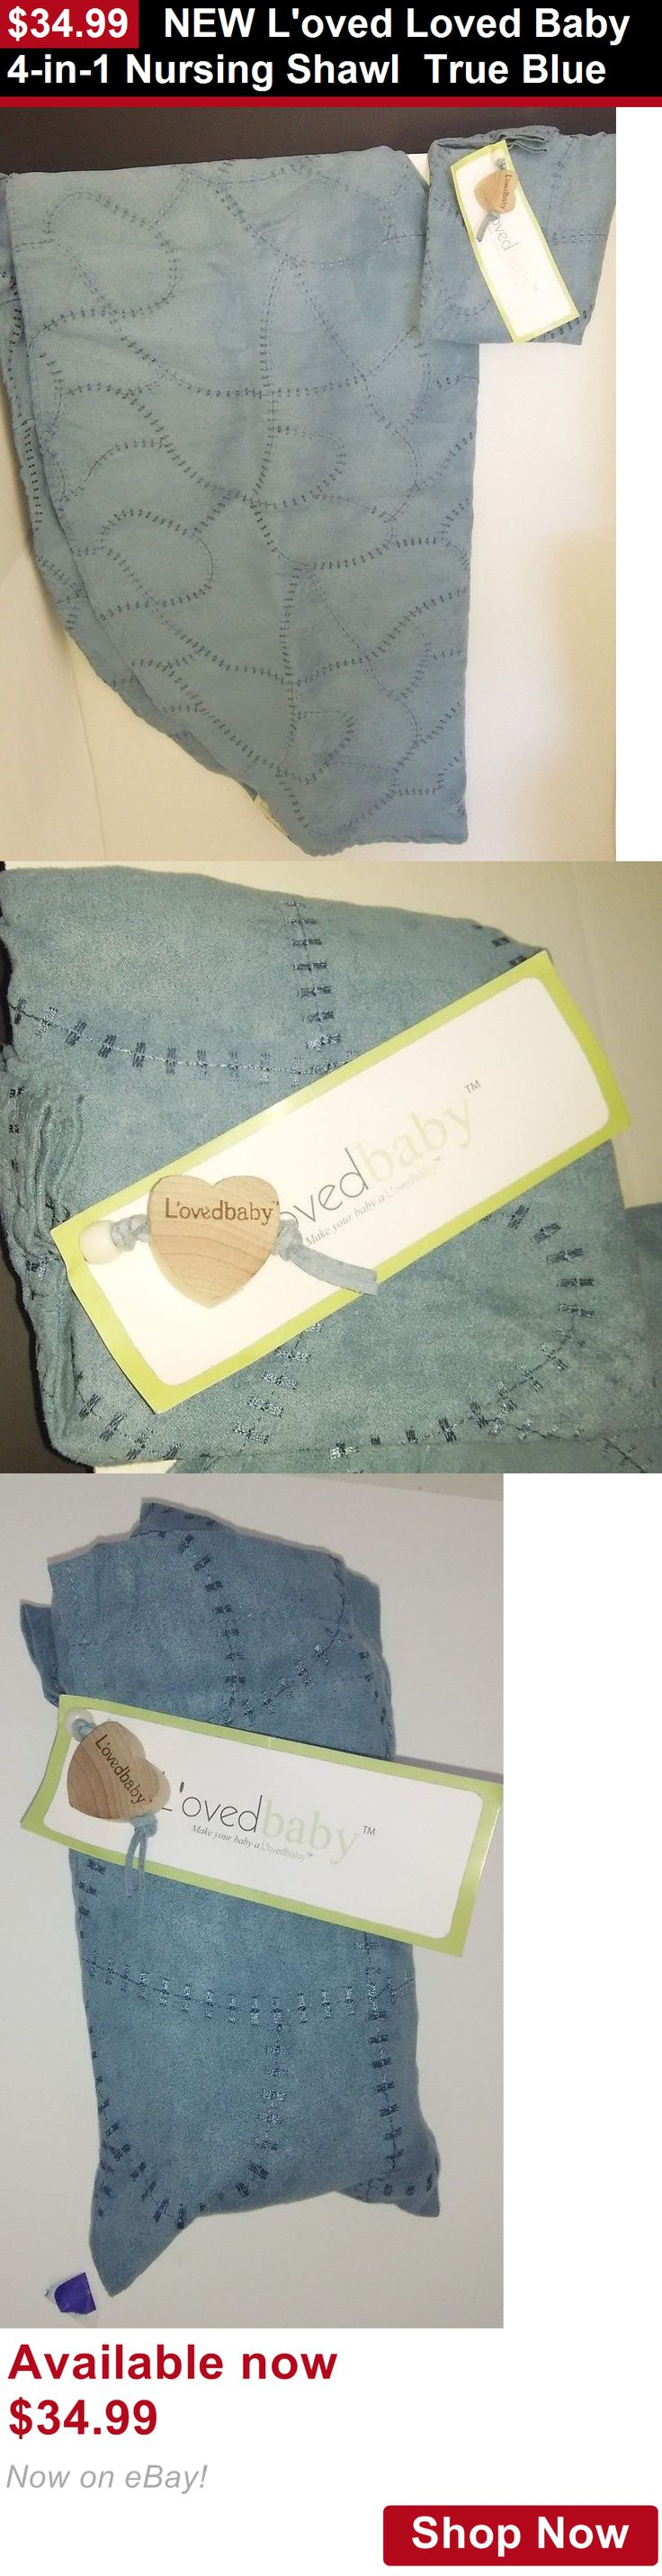 Other Baby Feeding: New Loved Loved Baby 4-In-1 Nursing Shawl True Blue BUY IT NOW ONLY: $34.99